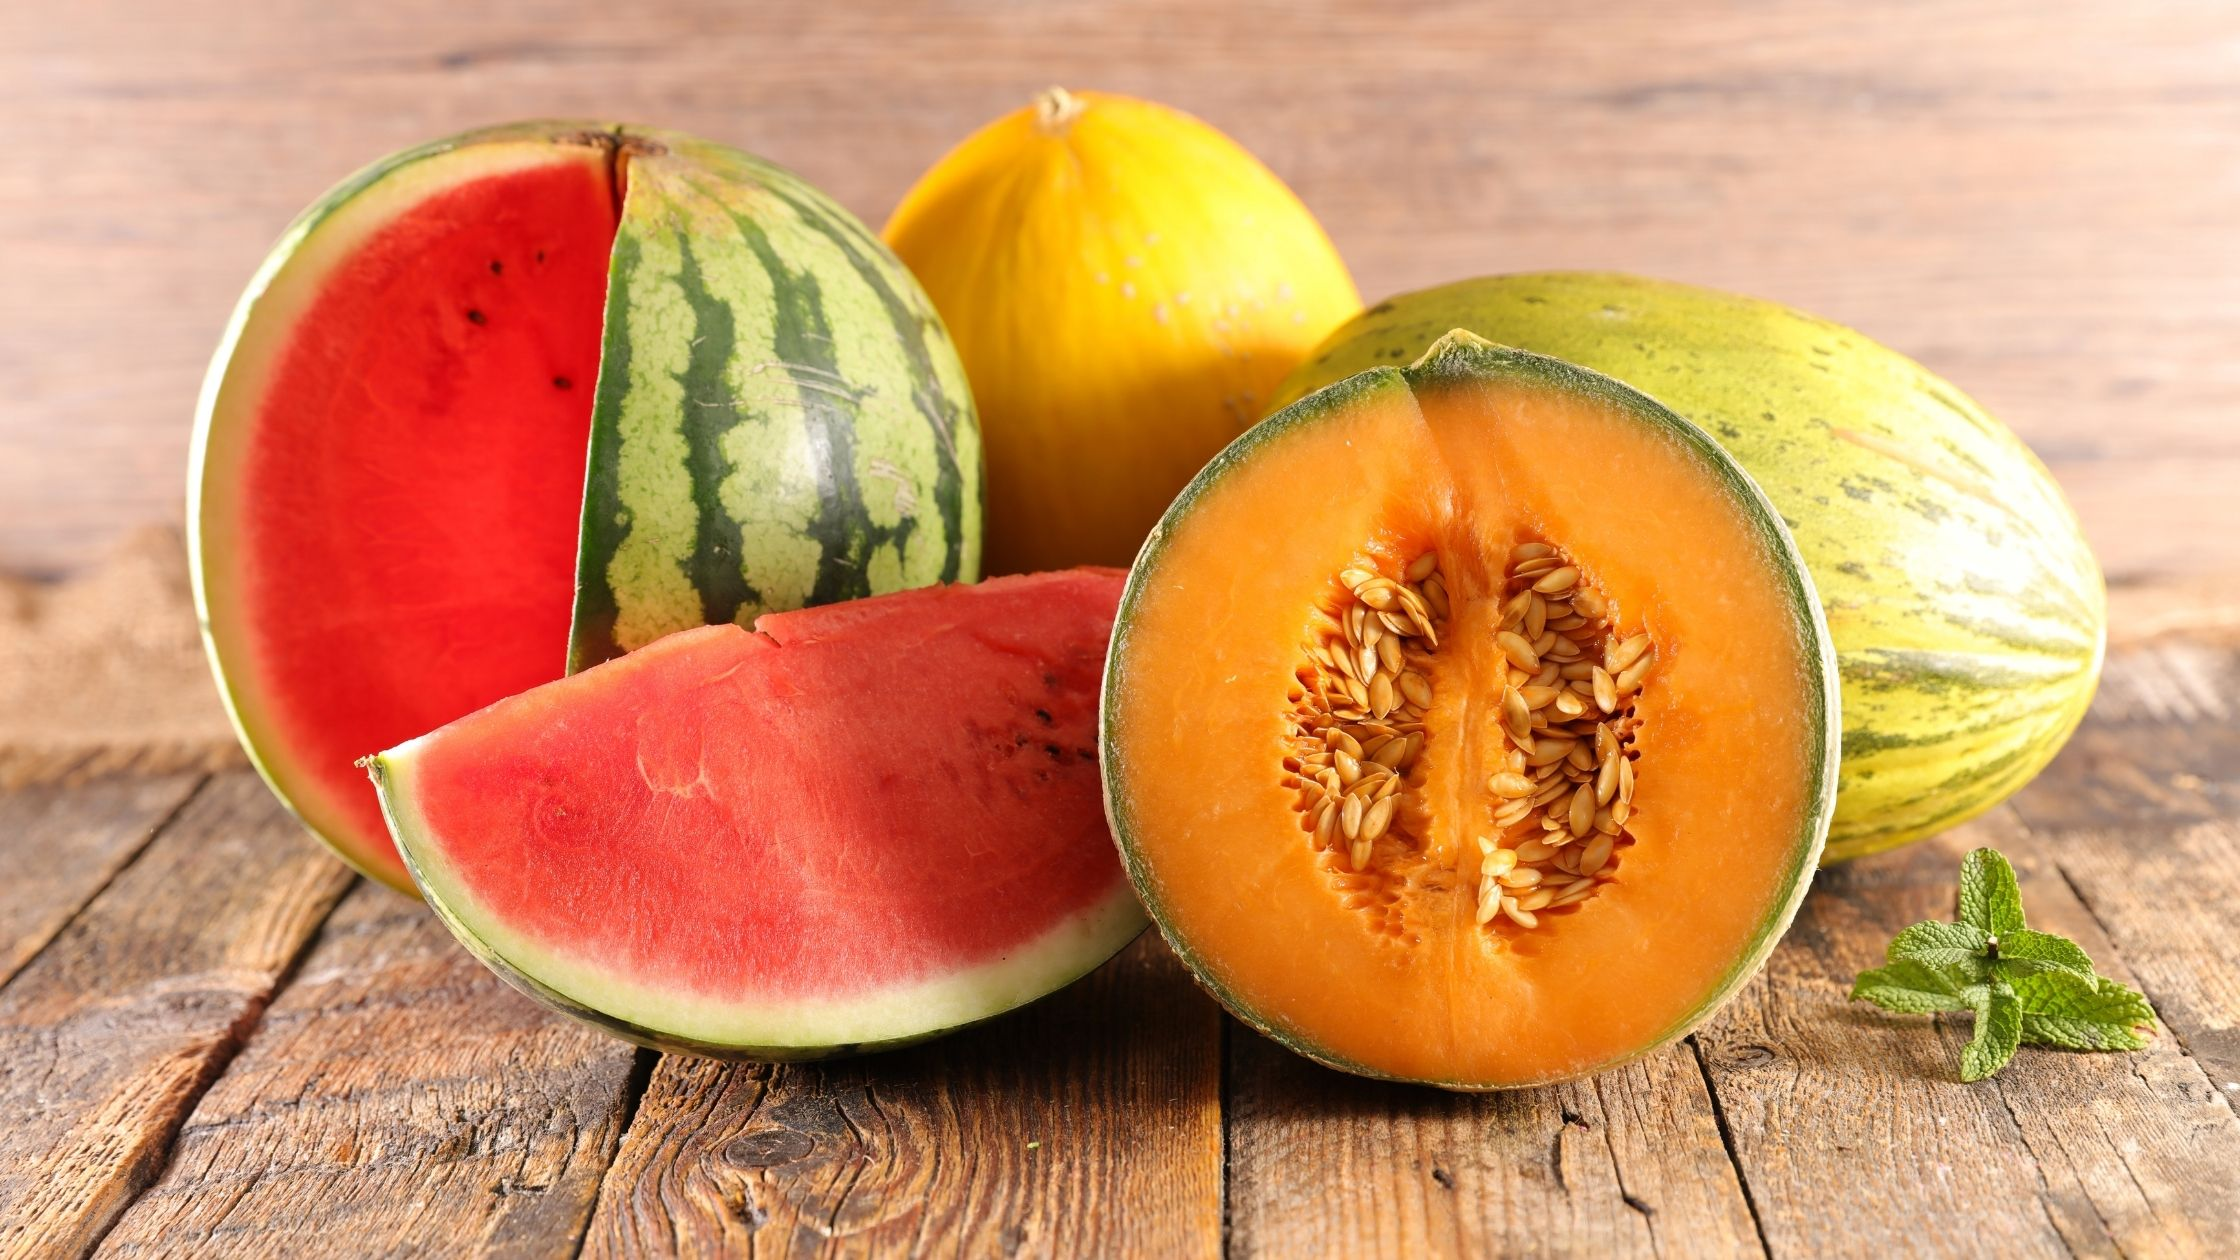 Can You Eat Melon and Watermelon on Keto Diet?